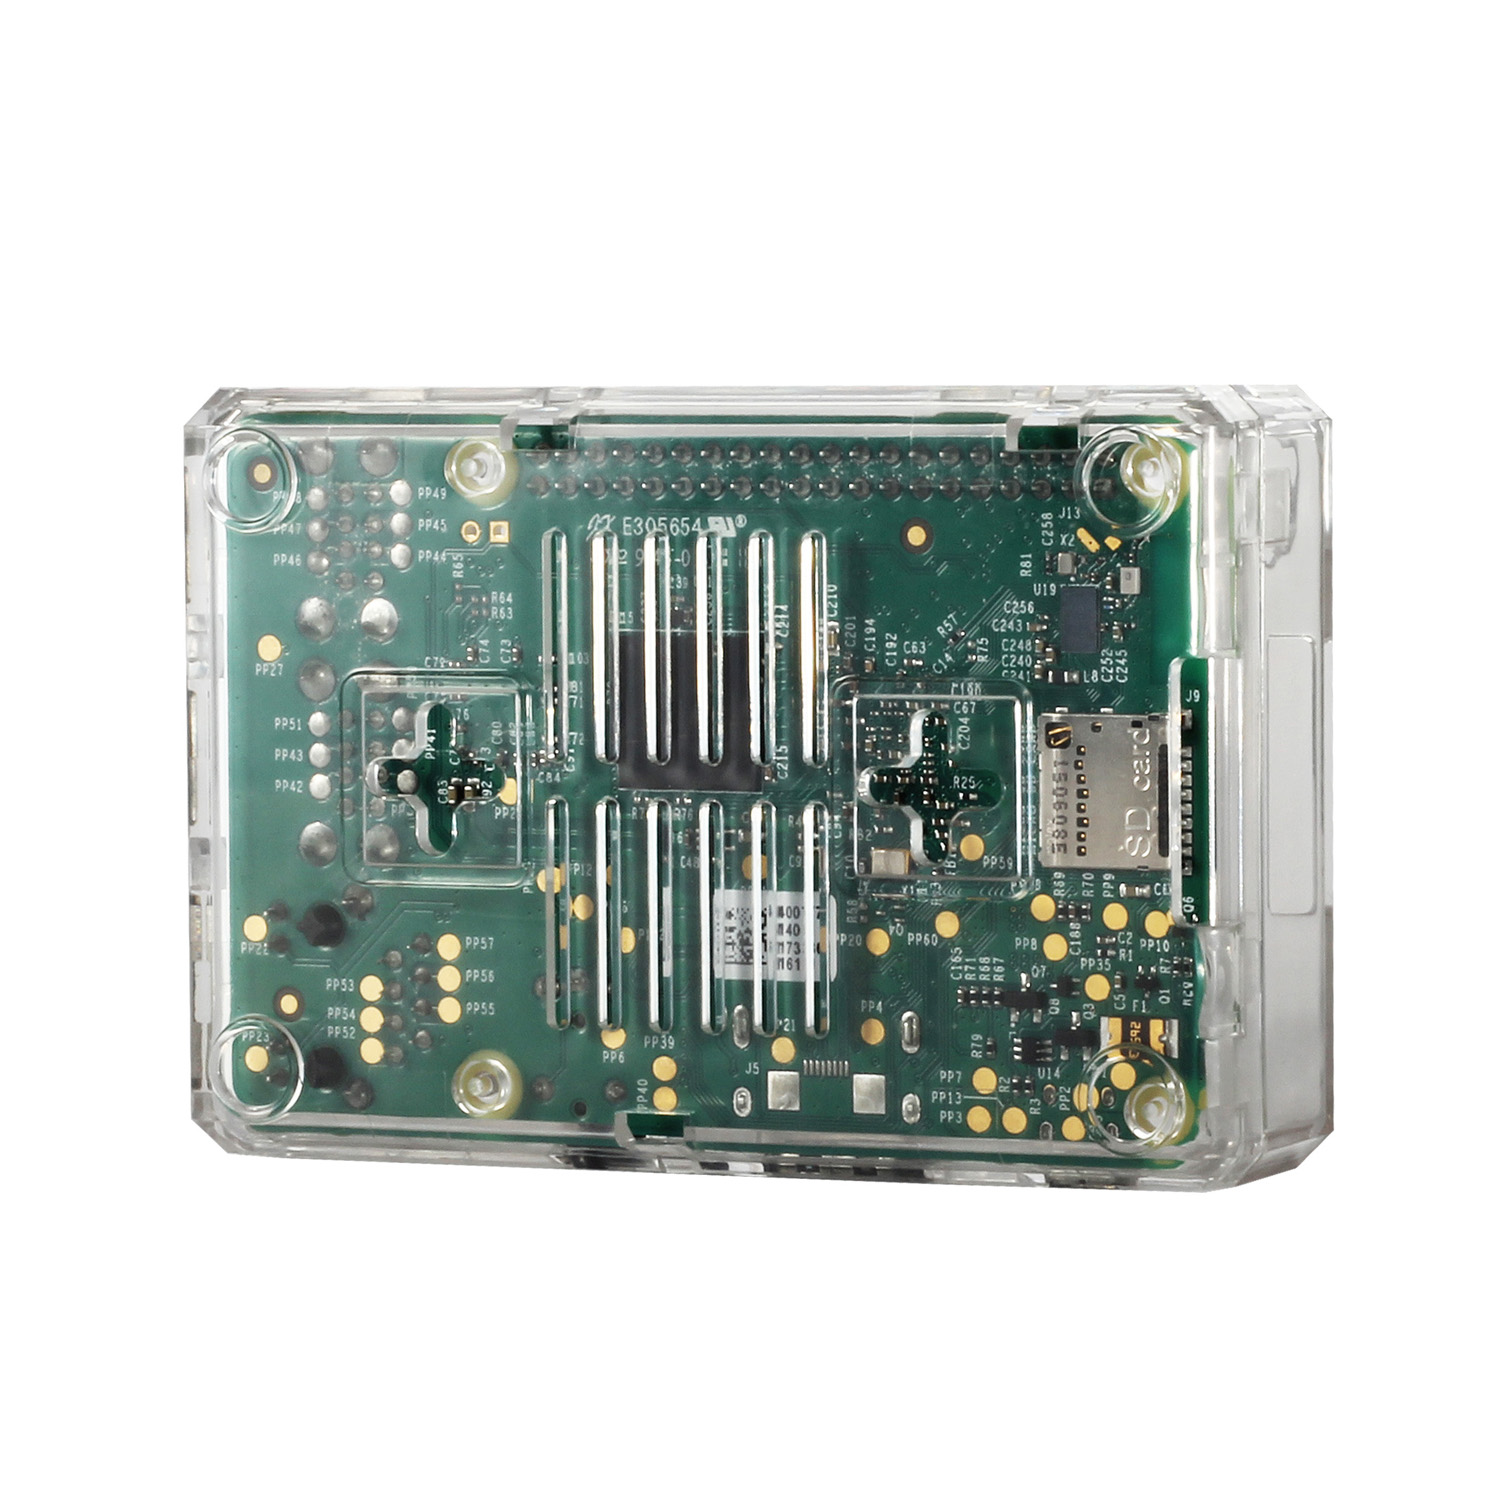 Case for Raspberry Pi 2 Model B Raspberry Pi 3 Model B